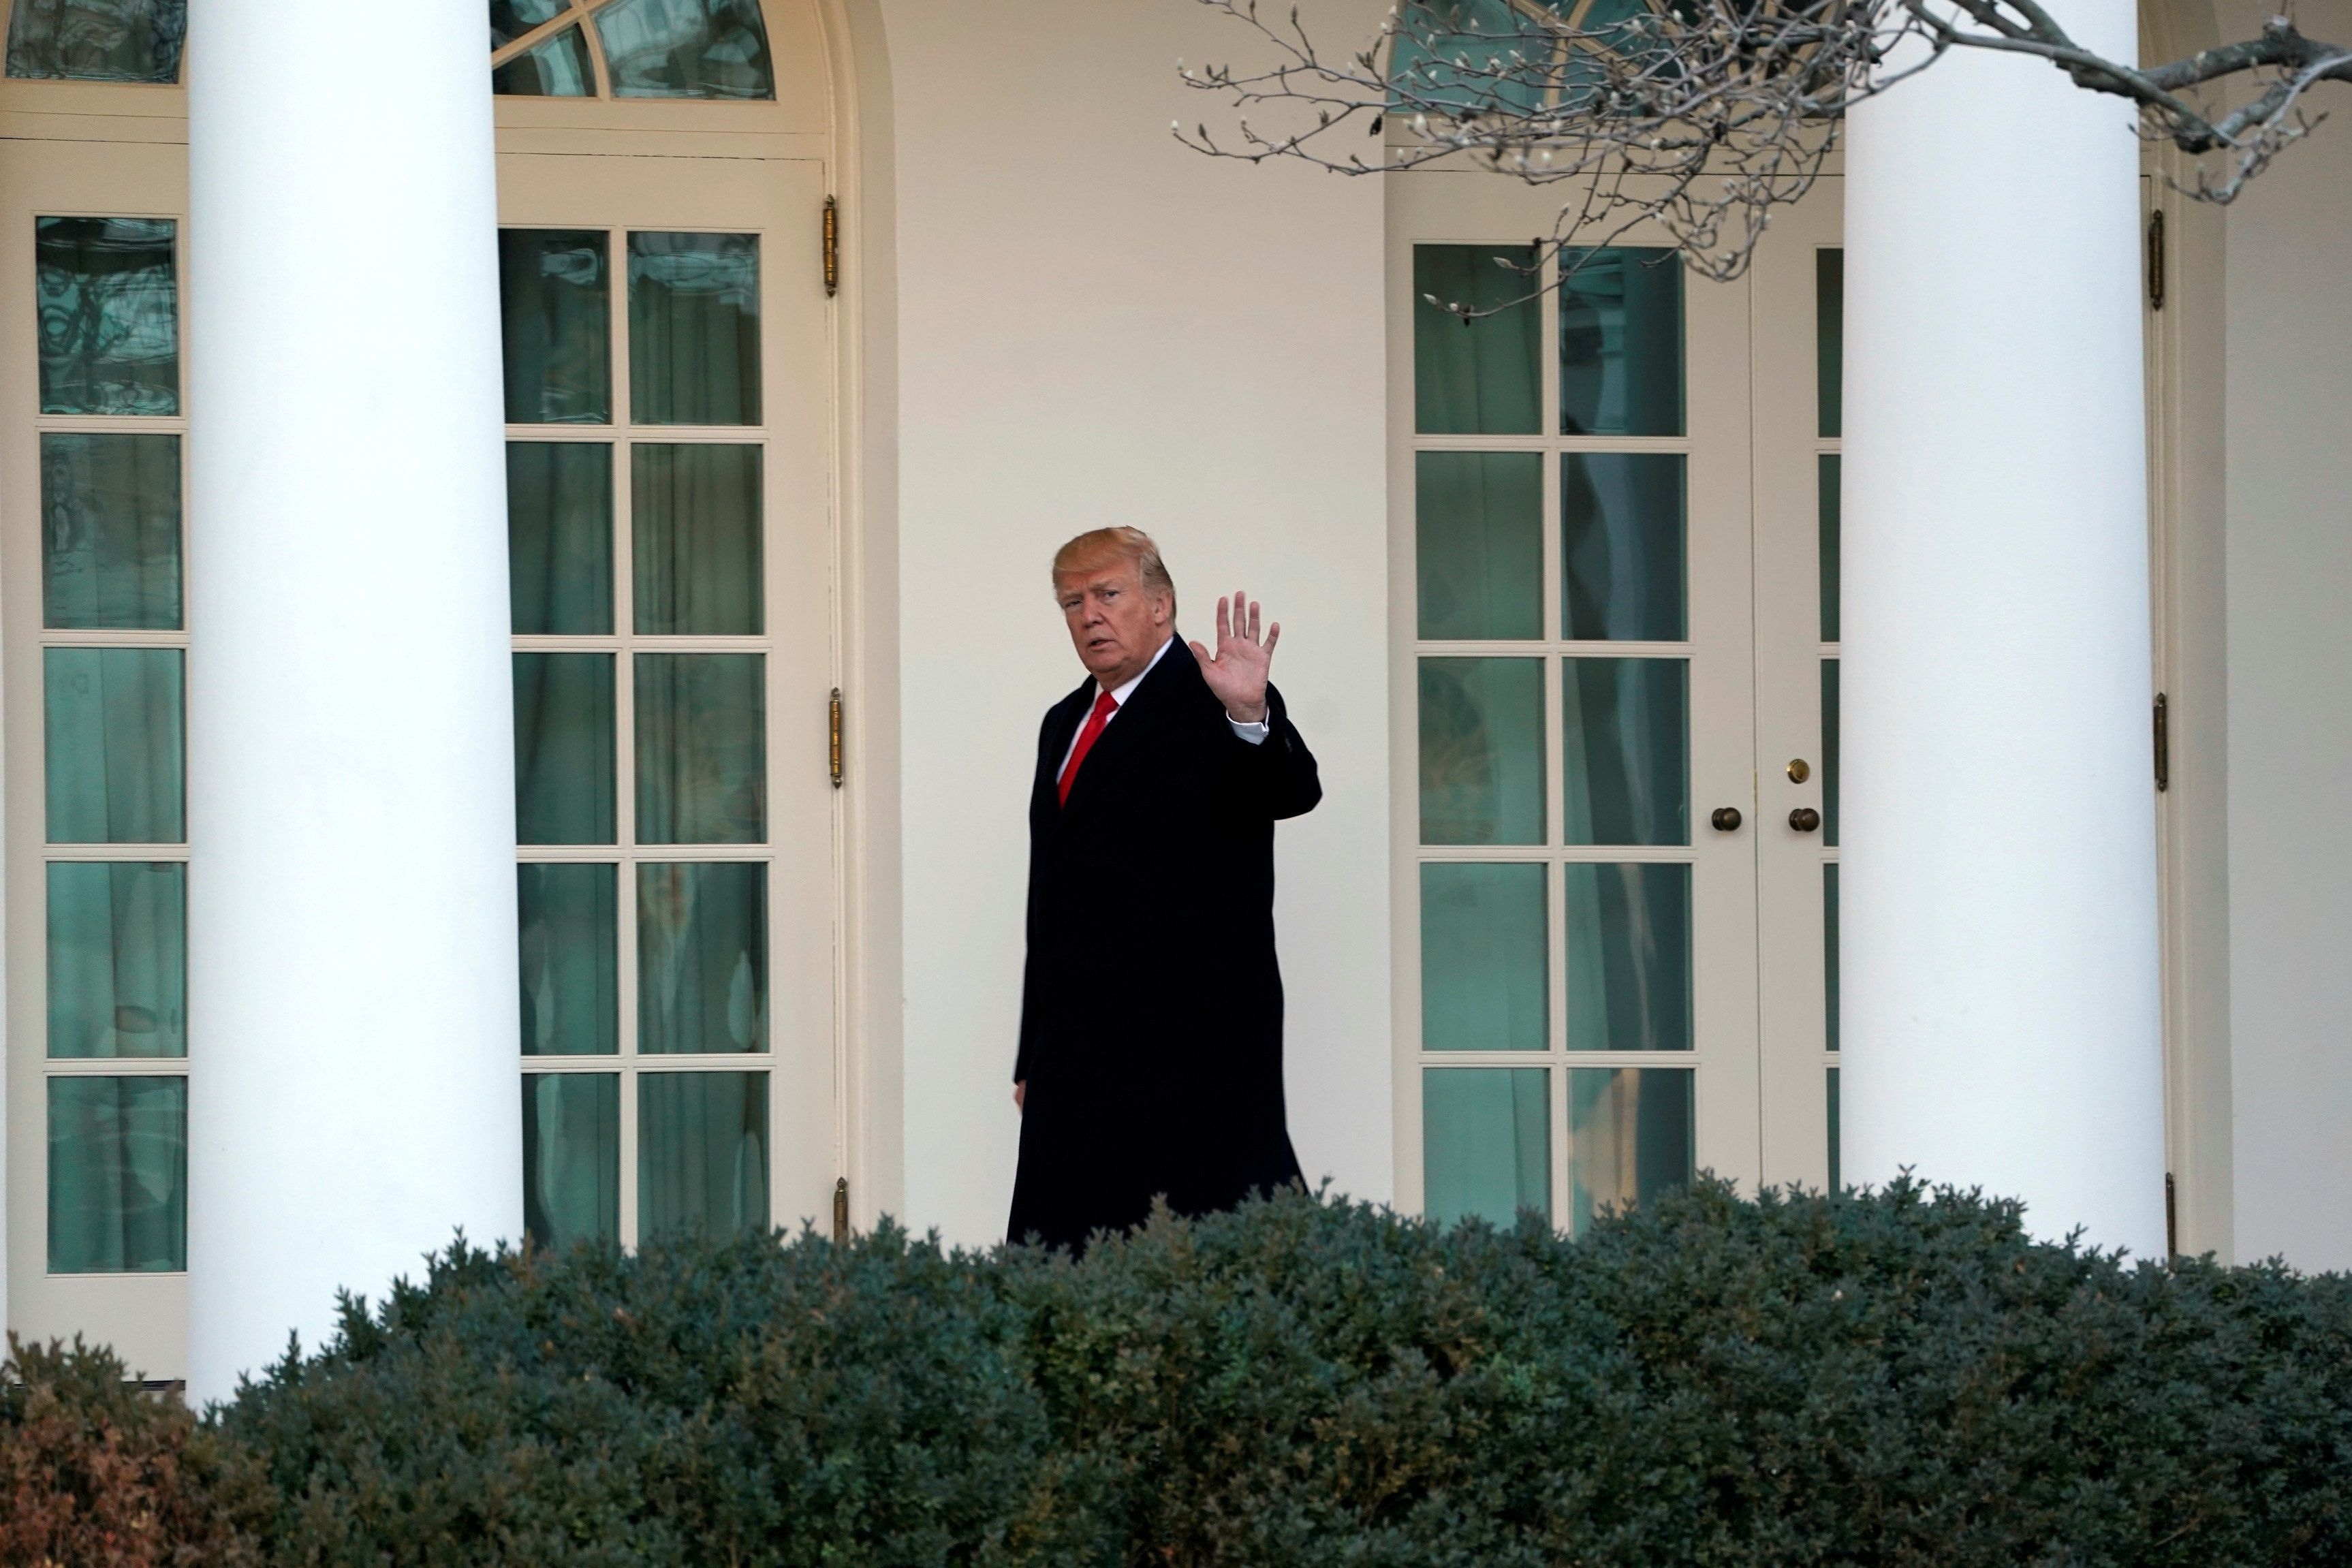 U.S. President Donald Trump waves as he walks to the Oval Office of the White House upon his return in Washington from Pittsburgh, U.S., January 18, 2018. REUTERS/Yuri Gripas